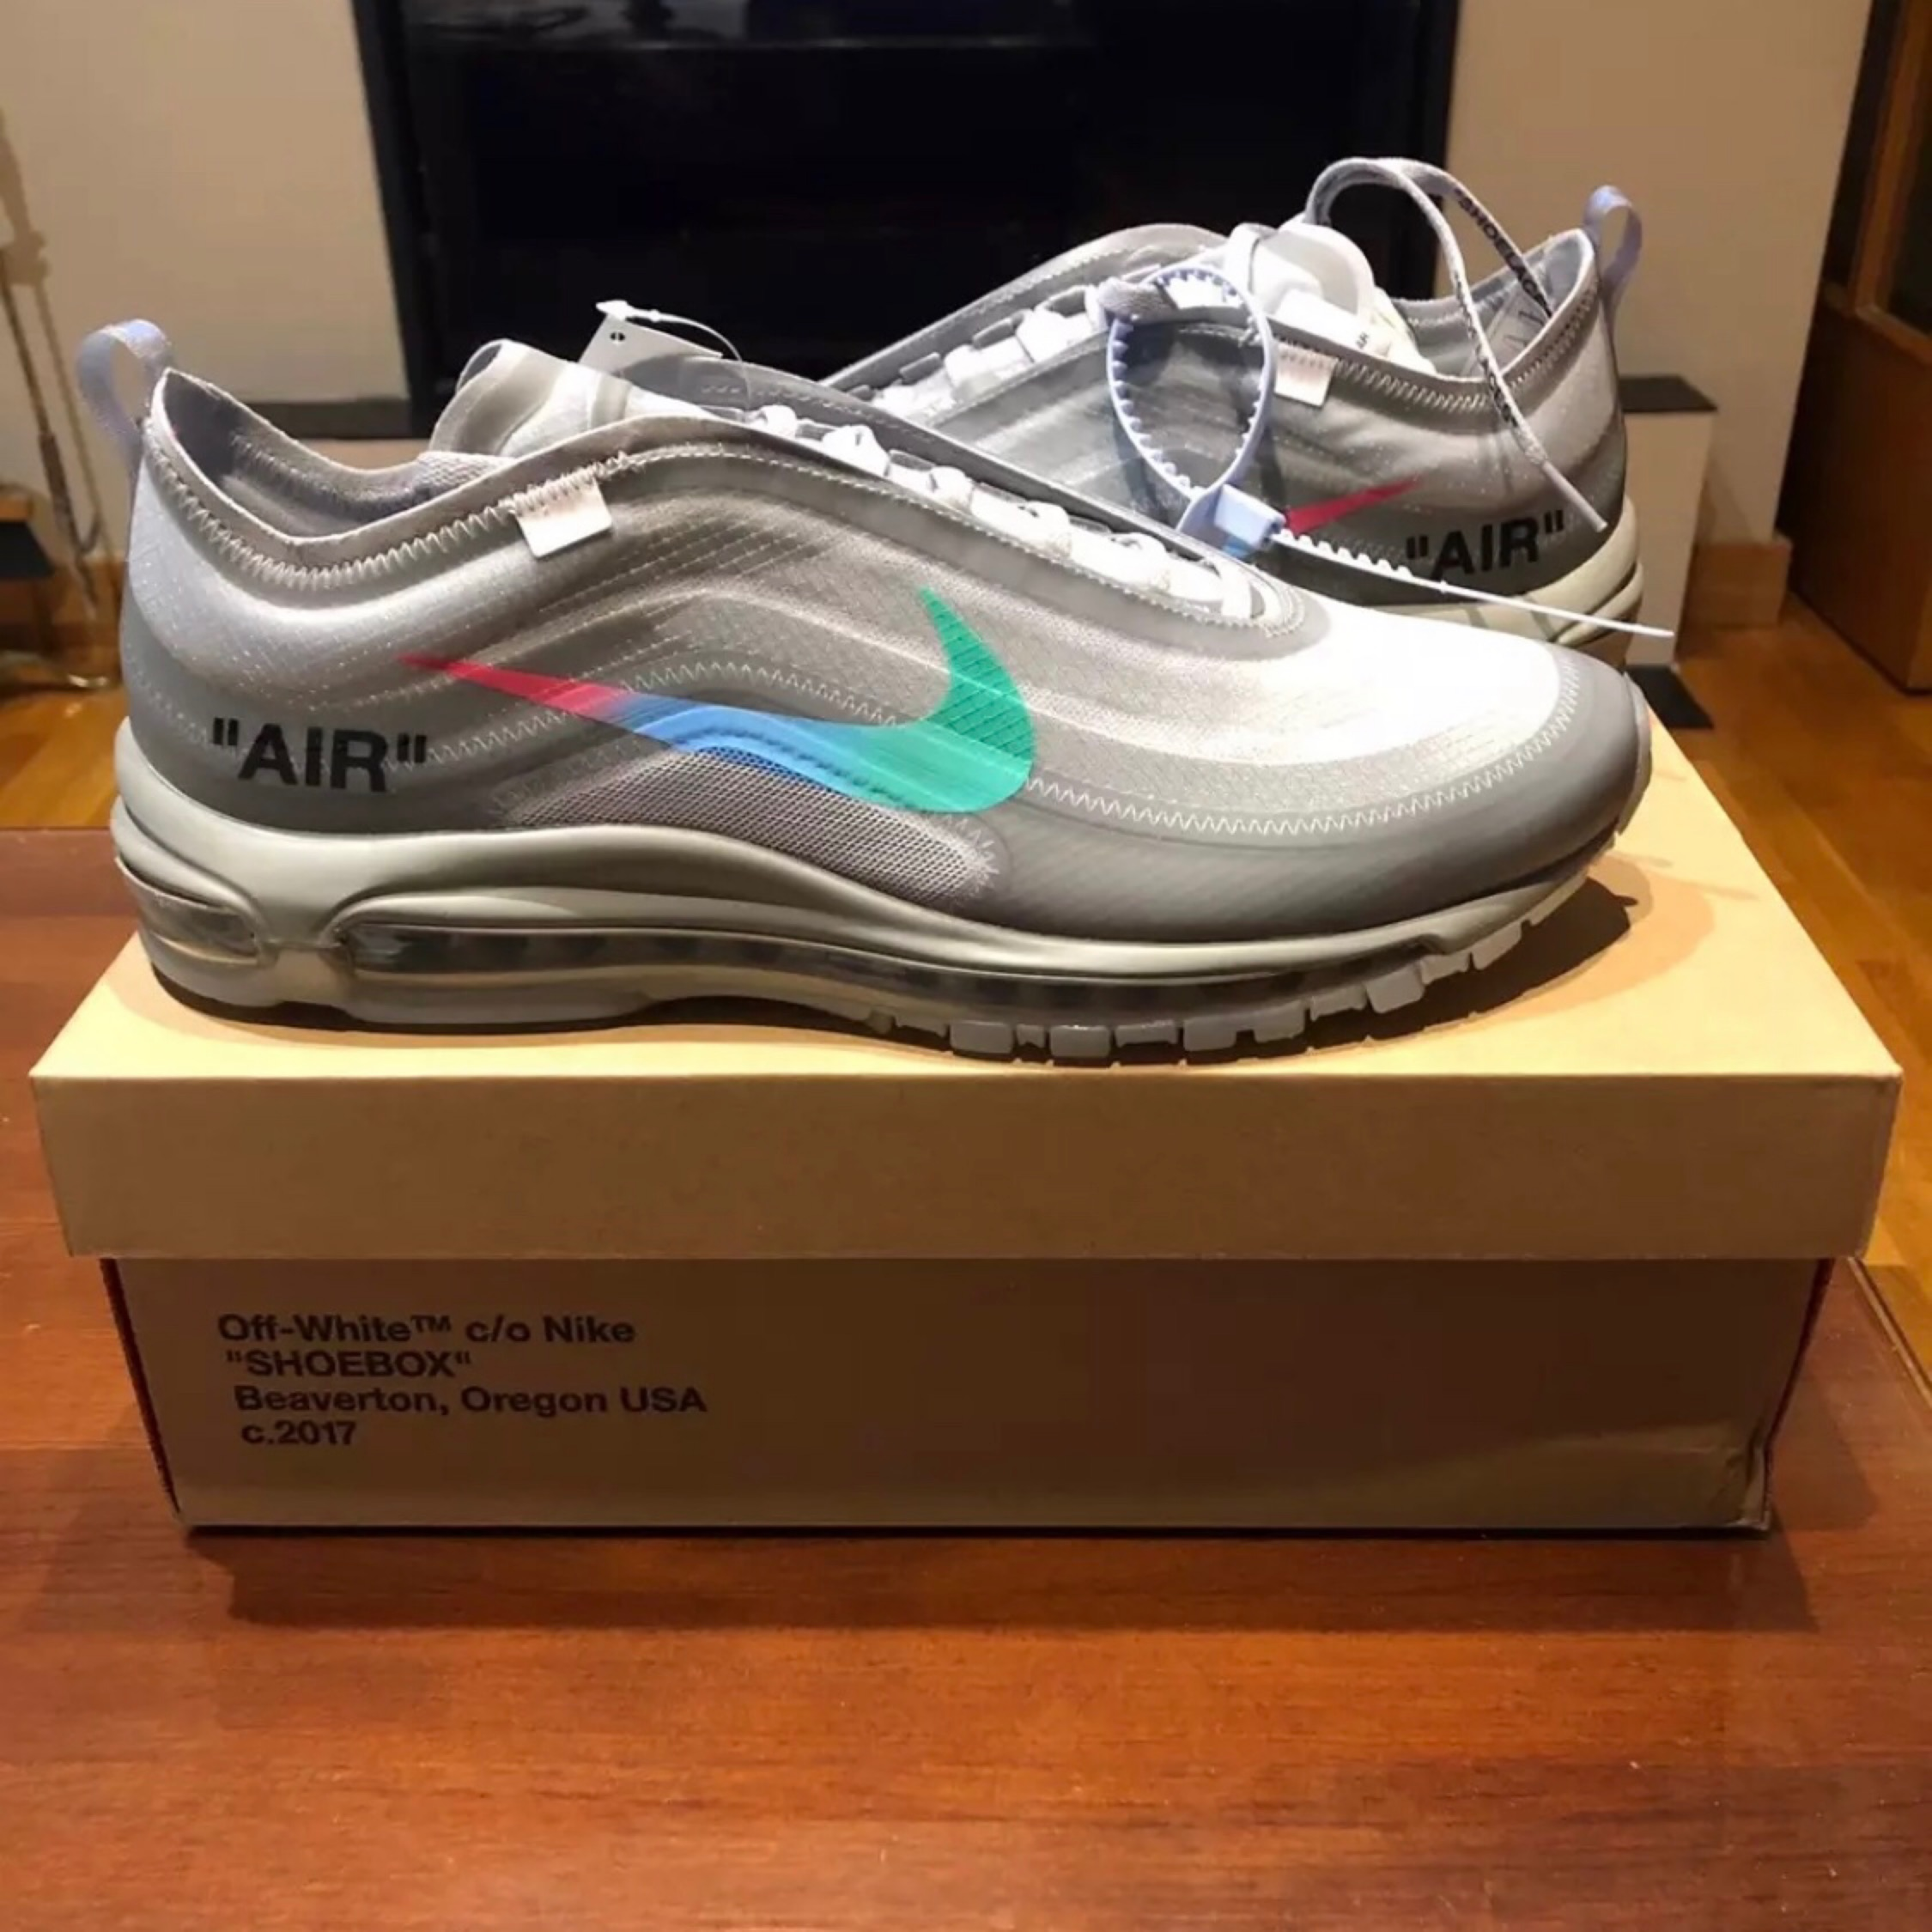 Nike Air Max 97 Cr7's Gold Very Rare. for sale eBay